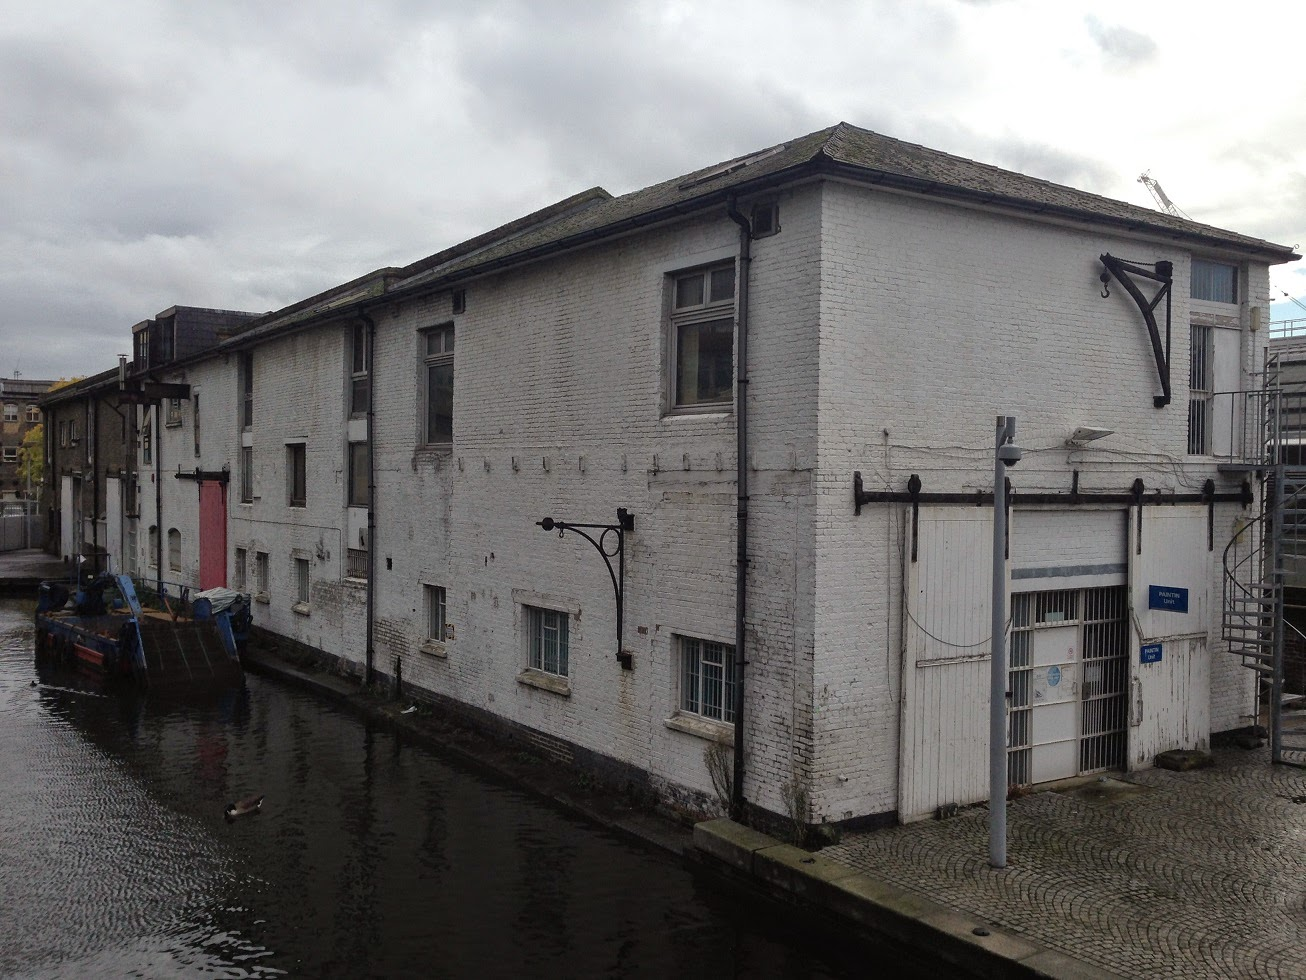 Old canal side buildings, Paddington Basin, London